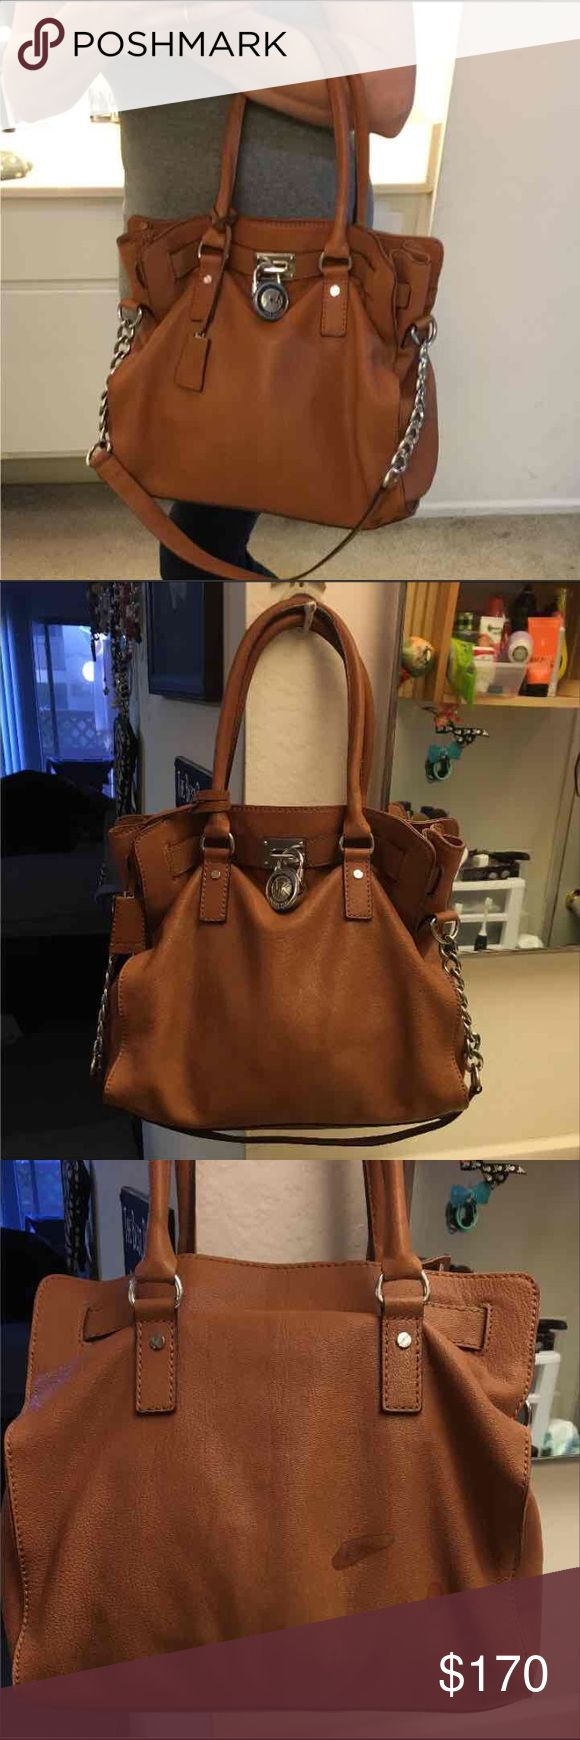 Like new authentic Michael Kors large Hamilton Super cute like new condition large size Hamilton used for like a month very clean inside has a few spots on leather from where nail polish remover splashed on it by accident pics up but the front of the purse is perfect so not noticeable when wearing lots of room let me know if you need more pics its a tan color with silver accessories that would go with anything original price $400 let me know if you have any questions or need more pics…